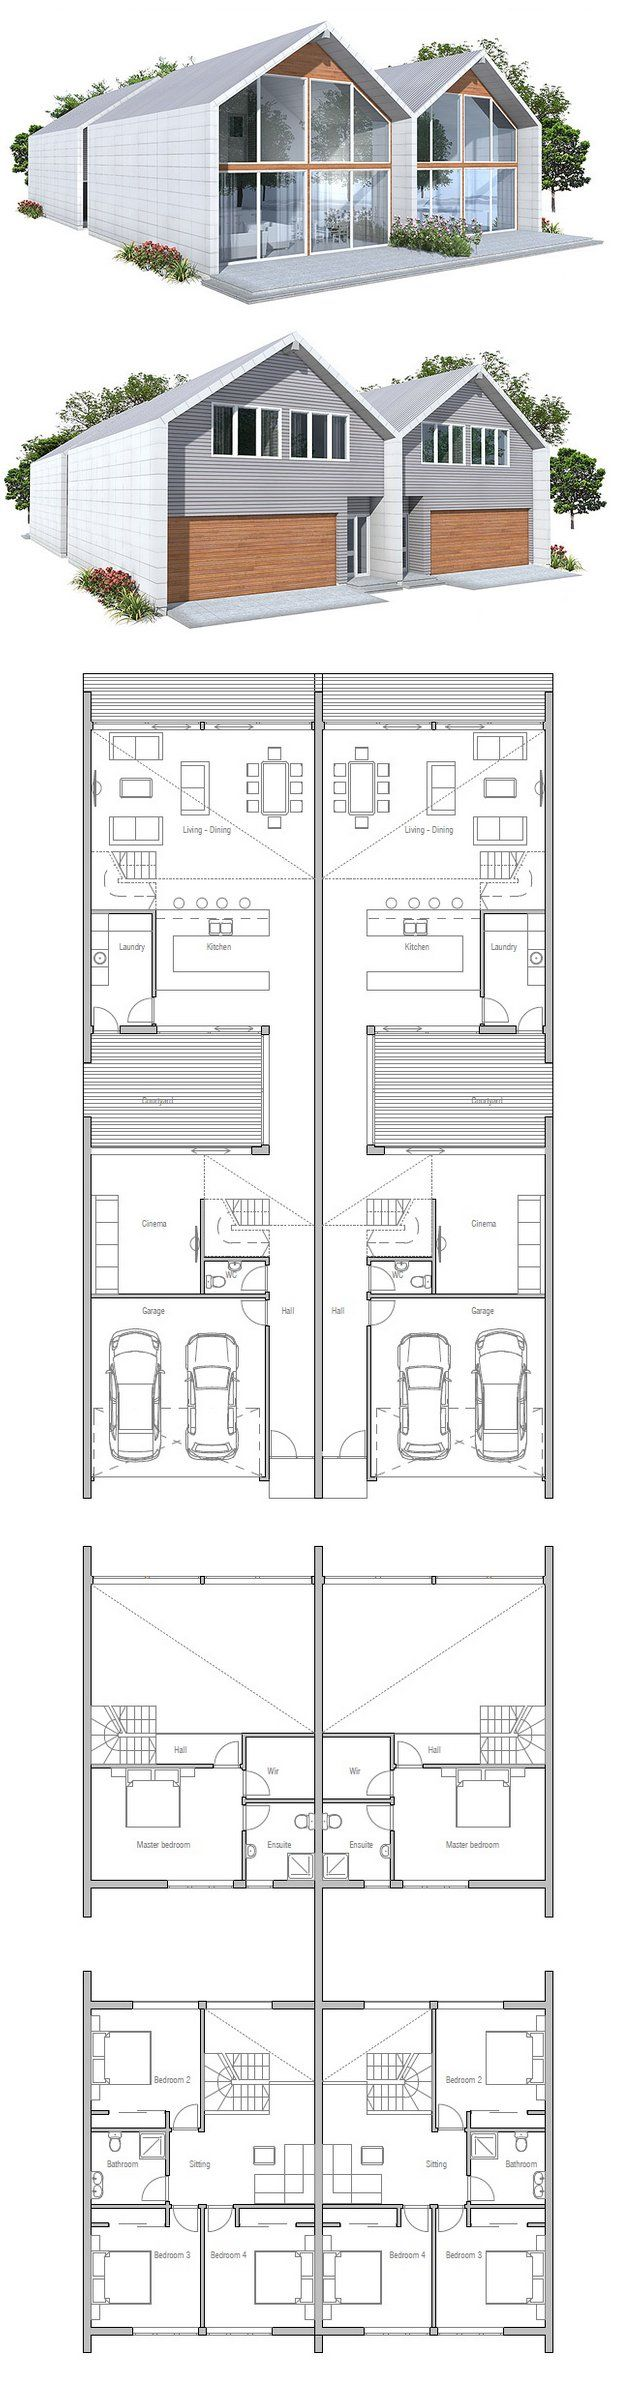 Duplex house plan to narrow lot 2 bed plans for Maison duplex plan